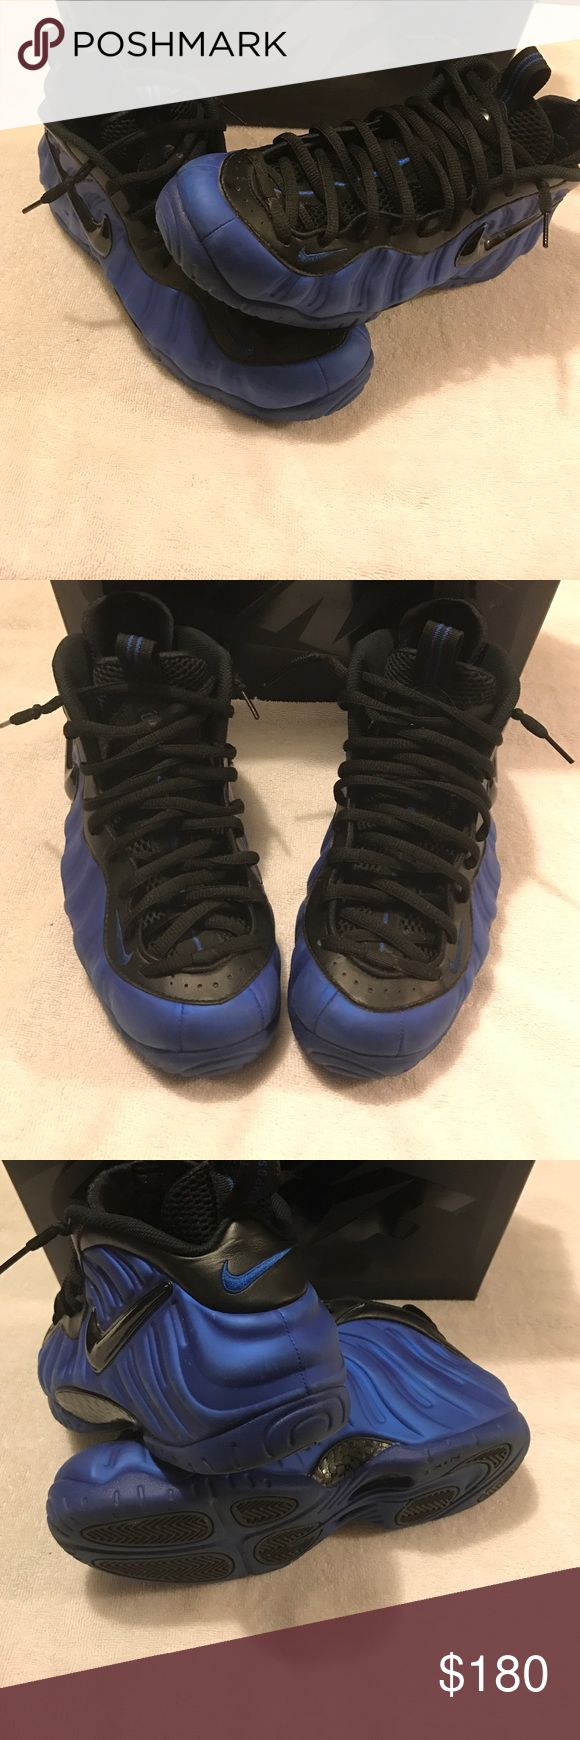 Air Foamposite Pro Authentic Hyper Cobalt and black Nike Air Foamposite Pro (Worn twice ) Nike Shoes Sneakers